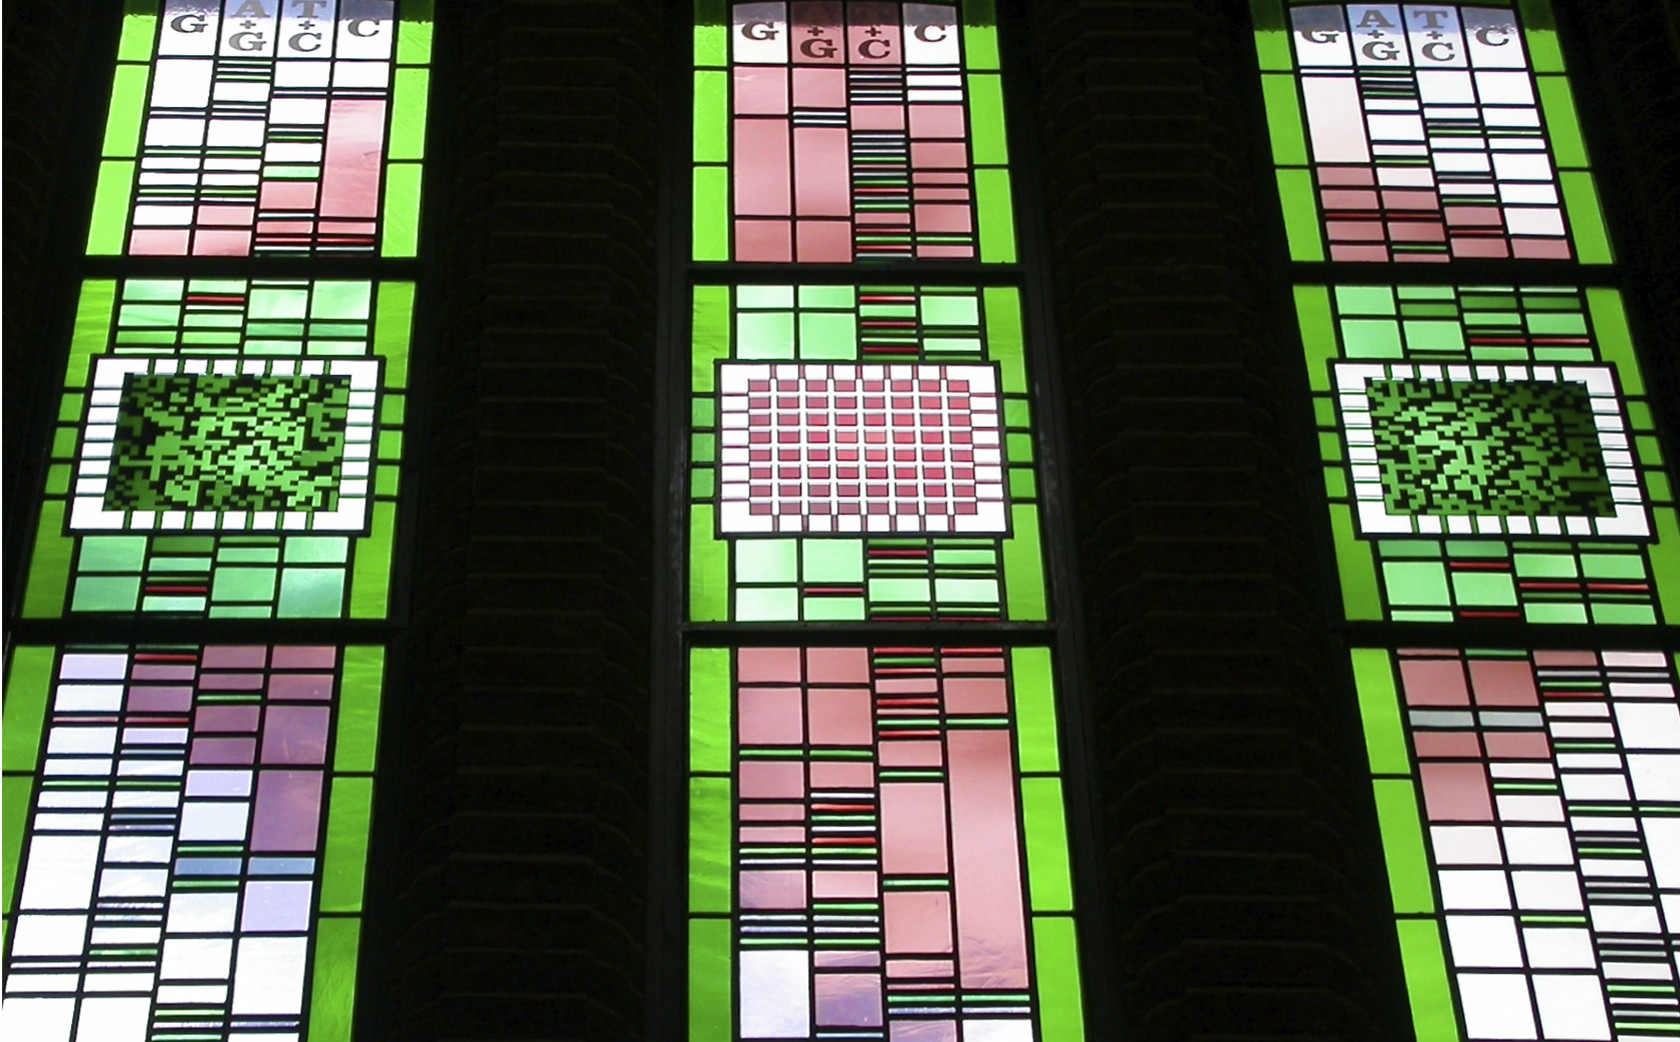 DNA content in these stained glass windows for the Hartley Library in Southampton University.